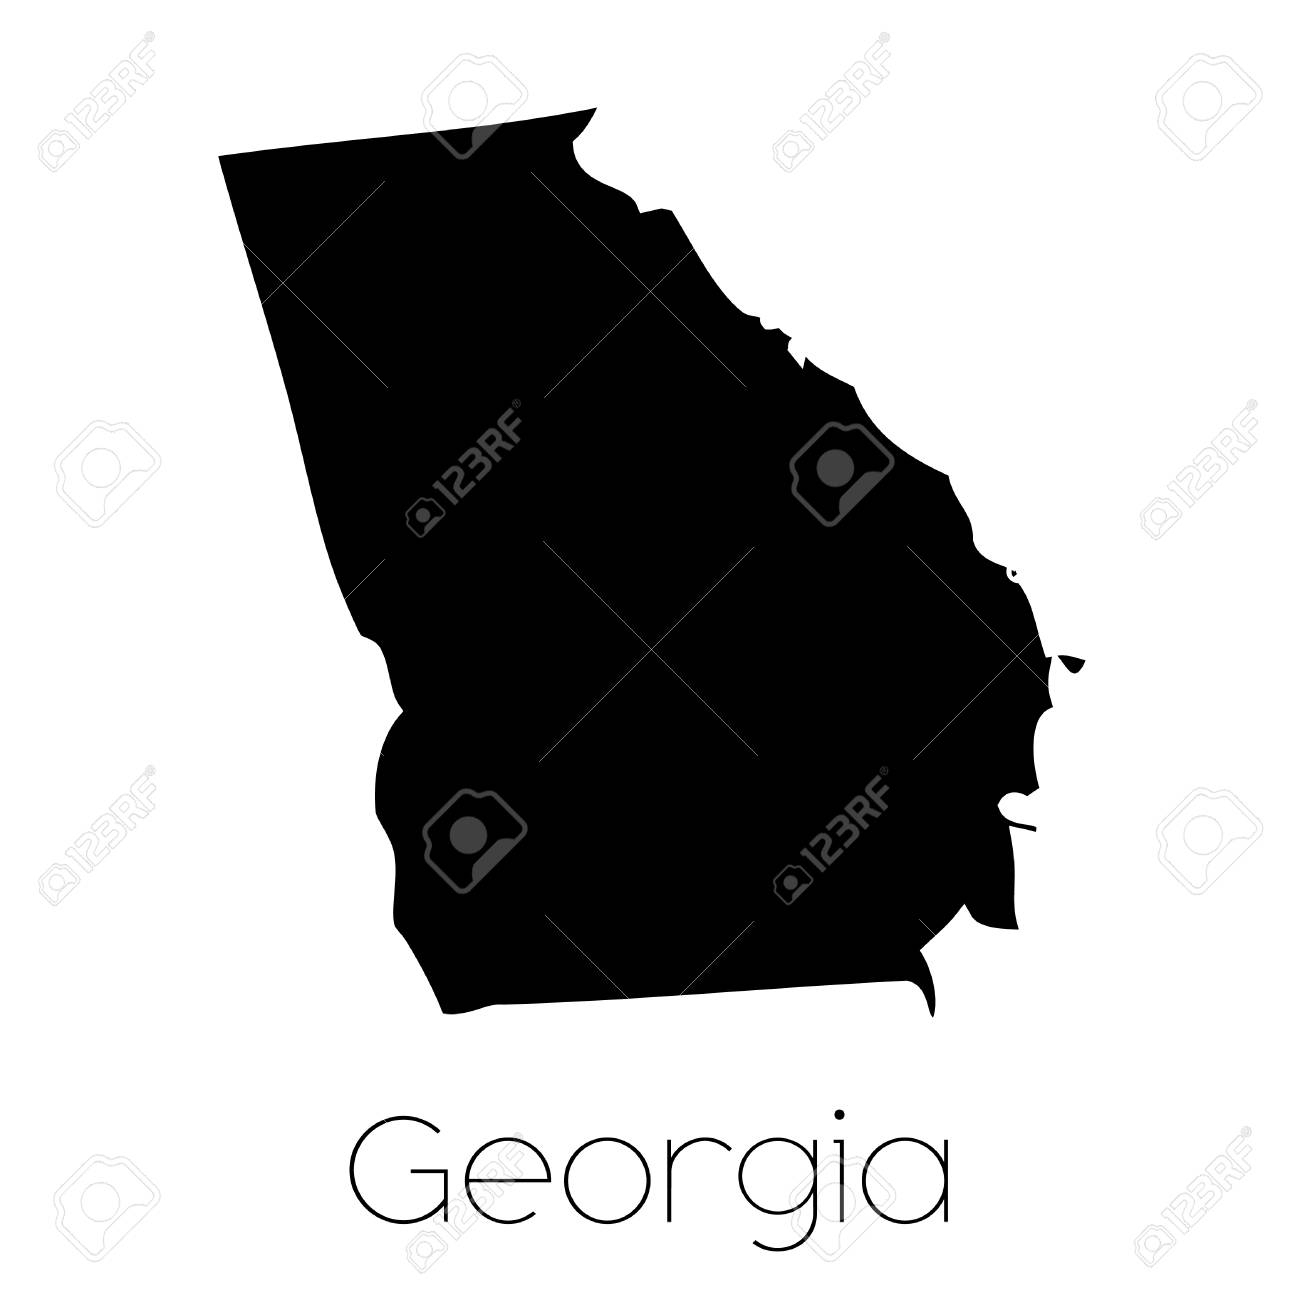 An Illustrated Shape of the State of Georgia on wisconsin topographical map key, georgia beaches map, georgia map cities ga, georgia county map, georgia's manufacturing key, georgia colony towns, georgia colony map, georgia capital map, georgia map bodies of water, georgia pine mountain trail map, georgia state map, georgia state location,